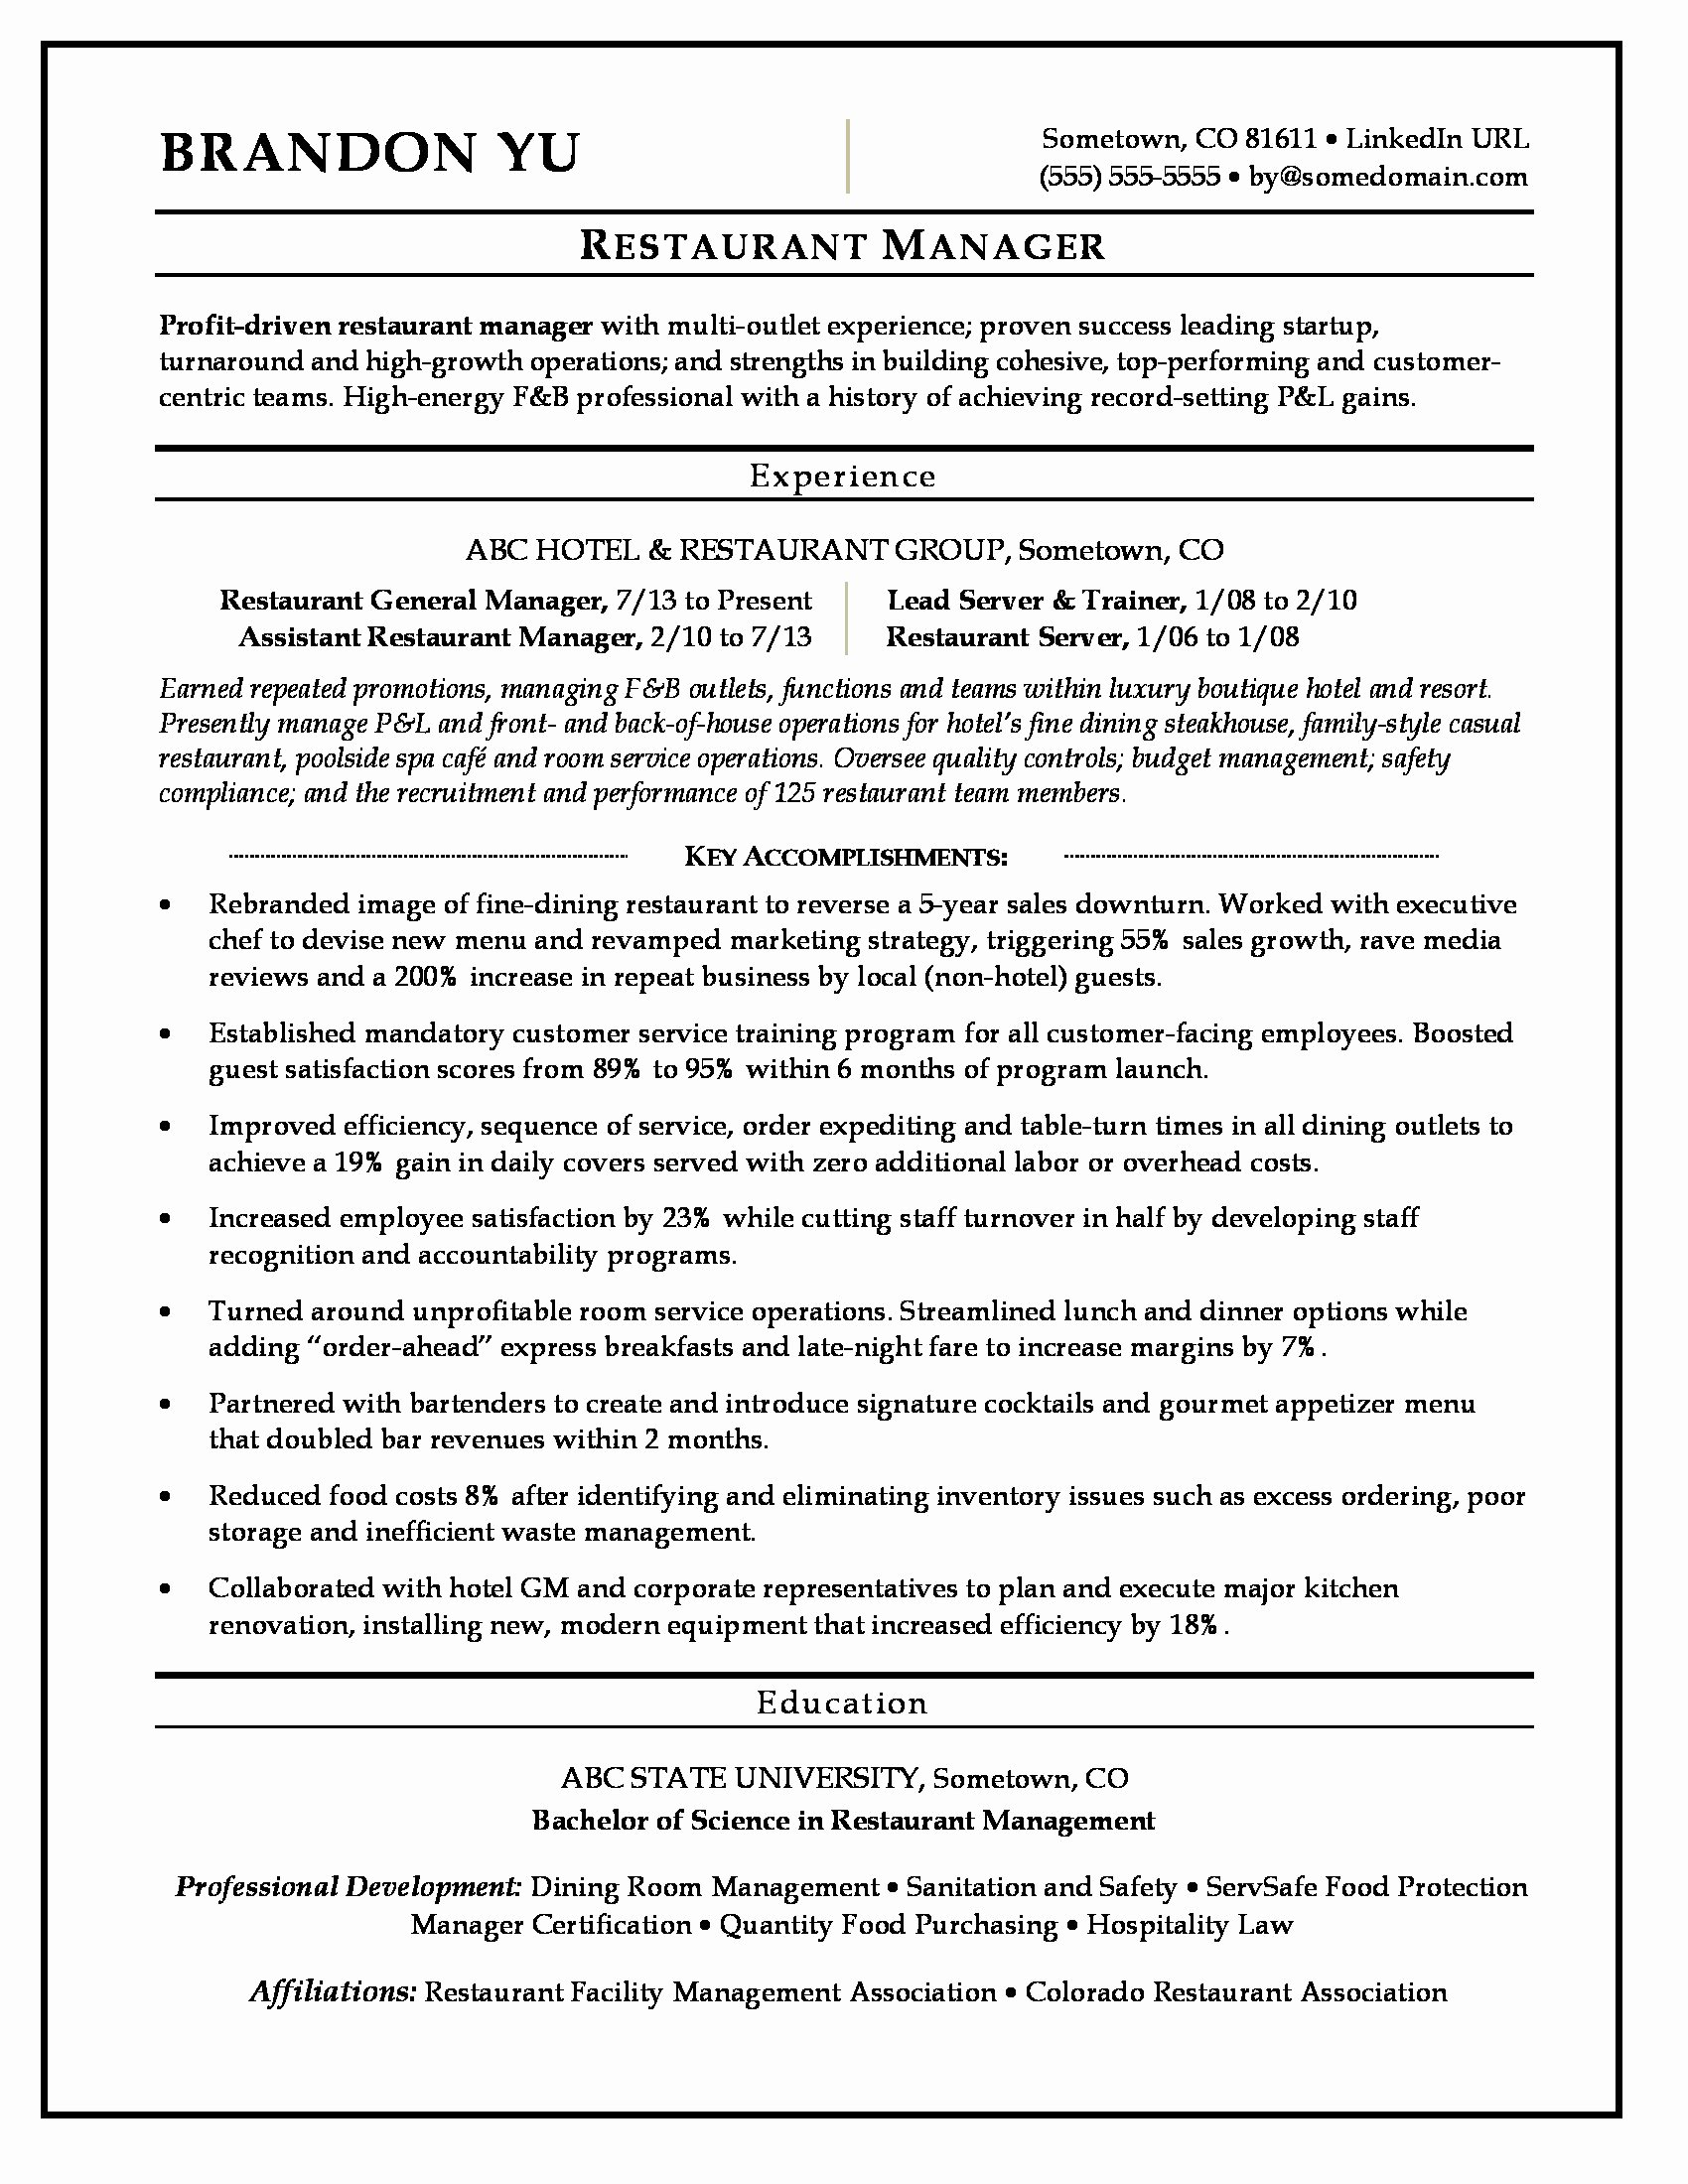 Restaurant Manager Resume Examples Best Of Restaurant Manager Resume Sample